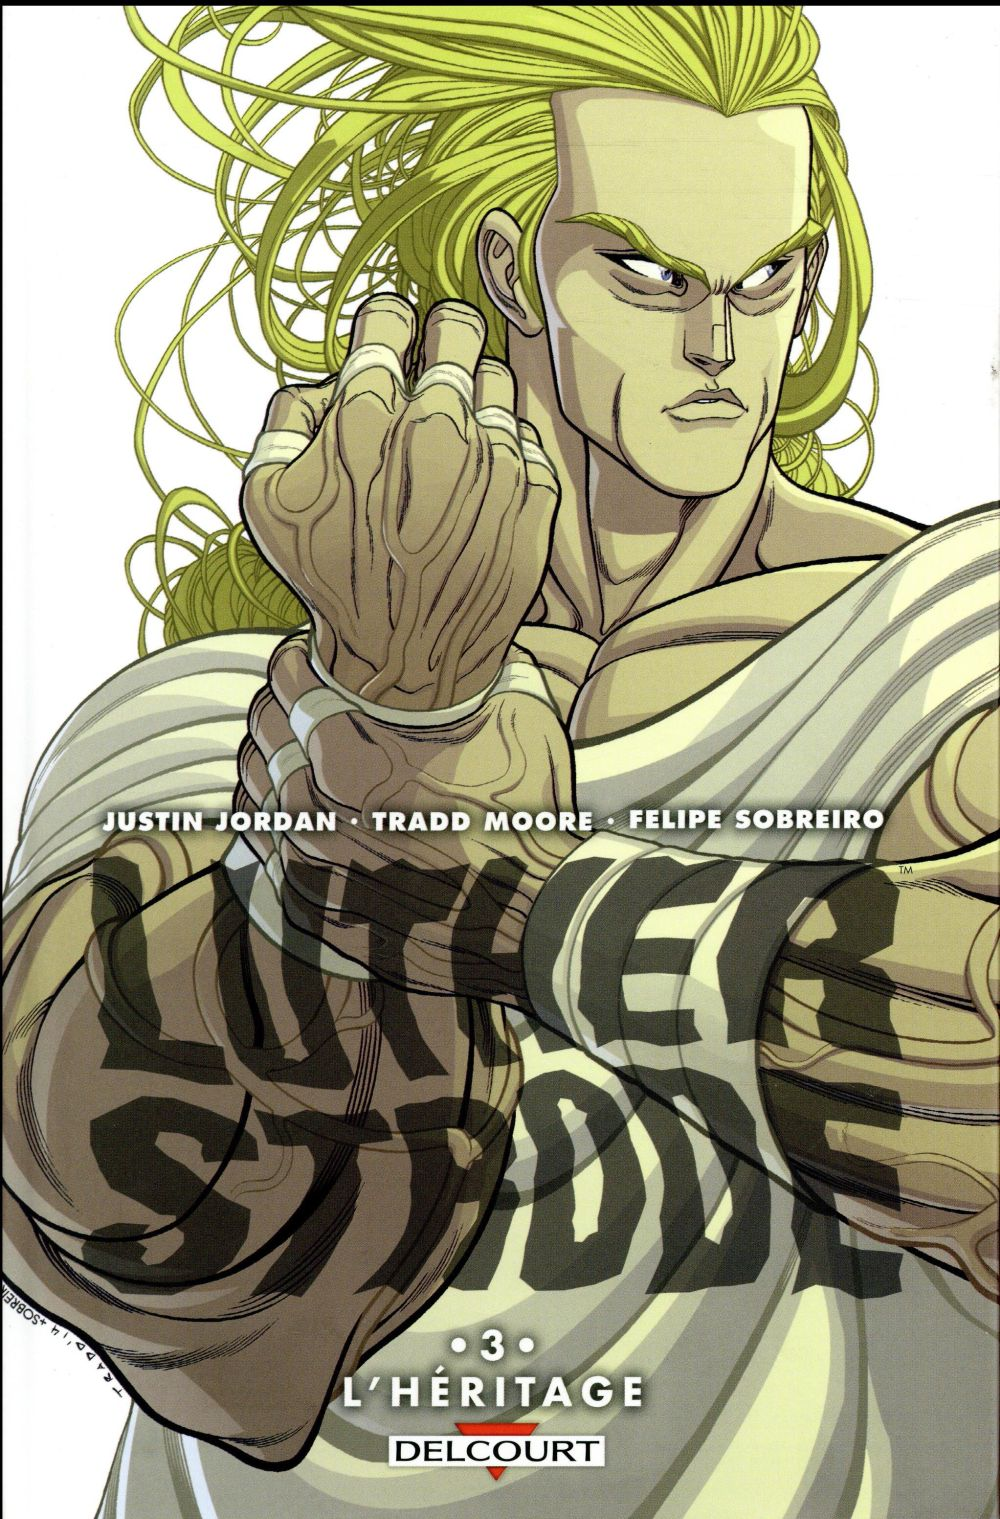 LUTHER STRODE T03. L'HERITAGE